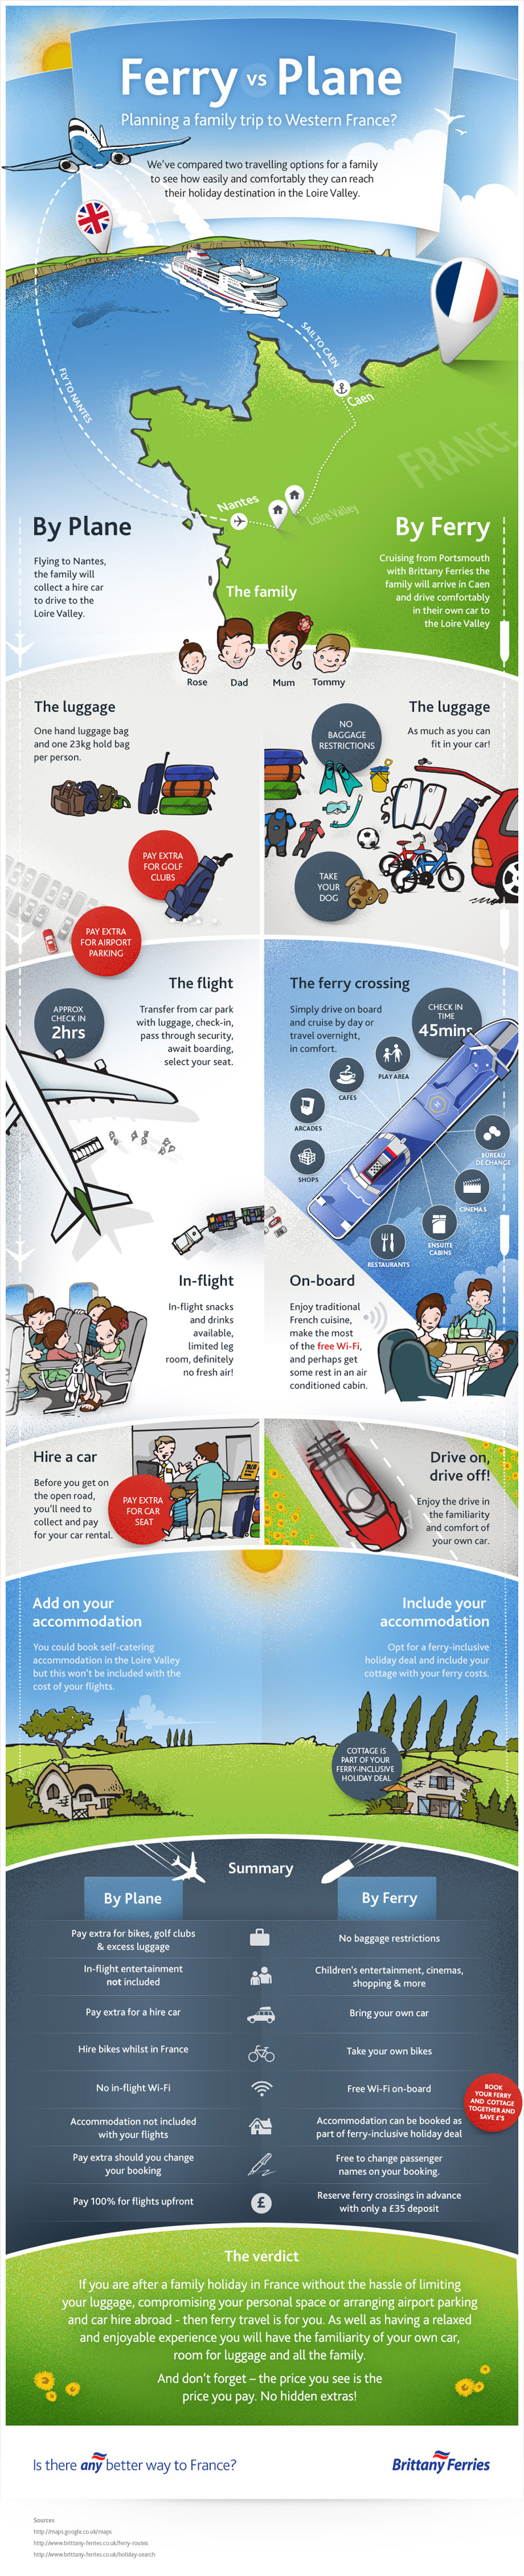 plane or ferry to France infographic